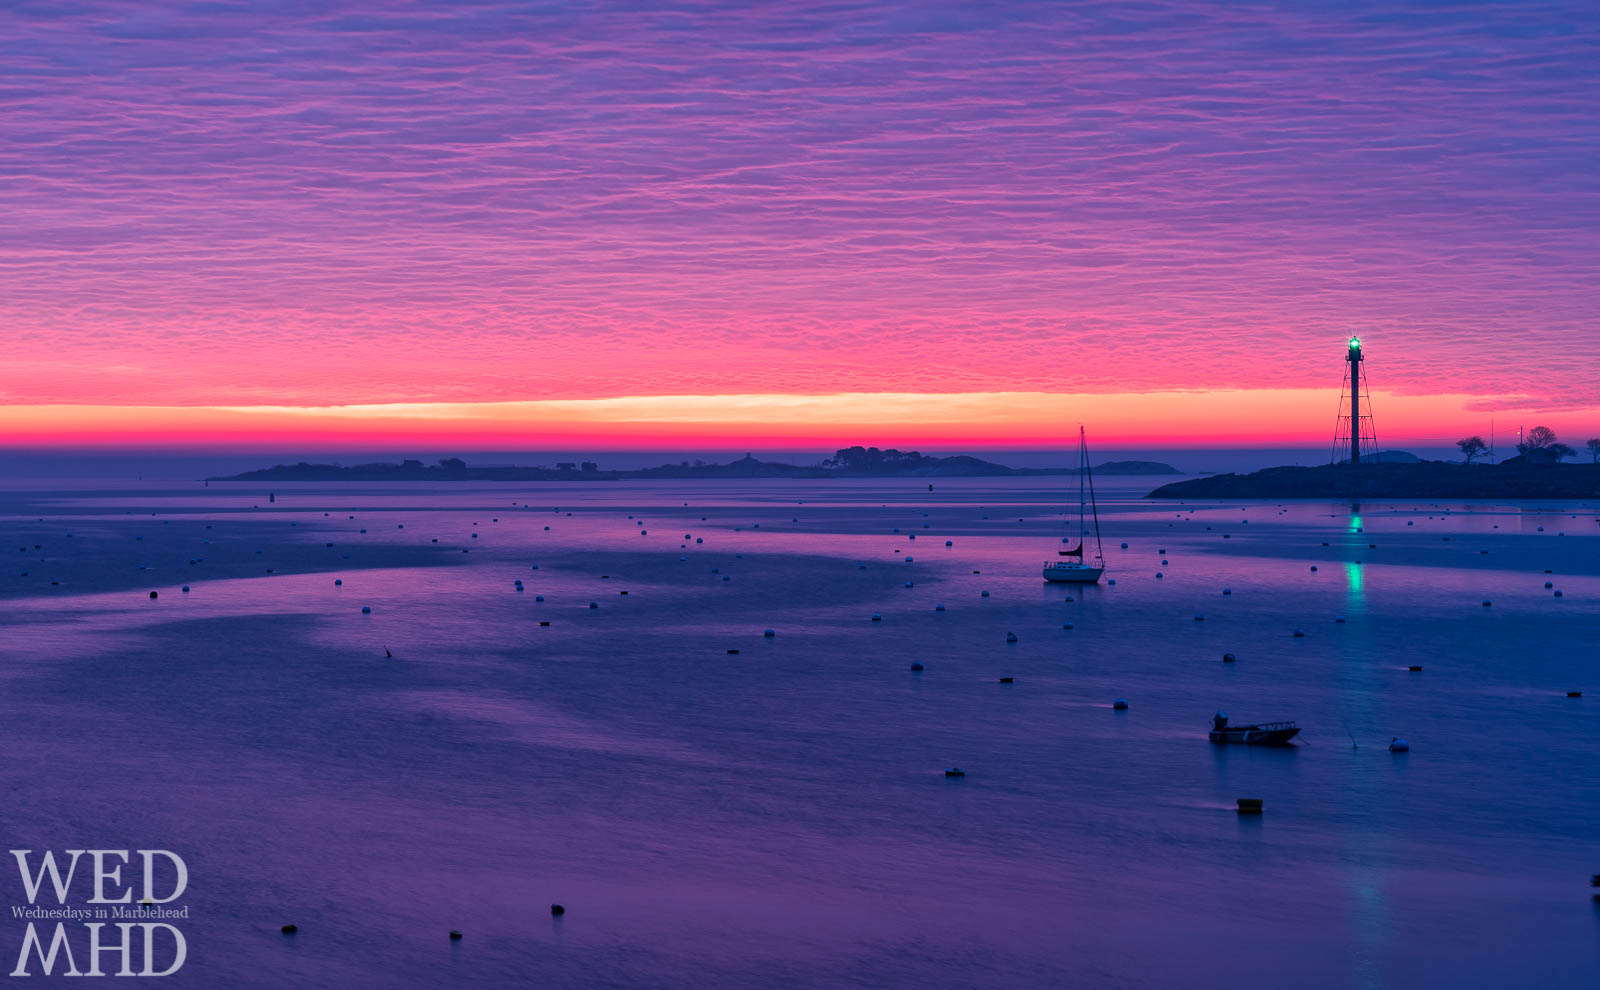 An early morning wakeup results in witnessing and capturing a corker of a sunrise with a loan boat in Marblehead Harbor bathed in purple light